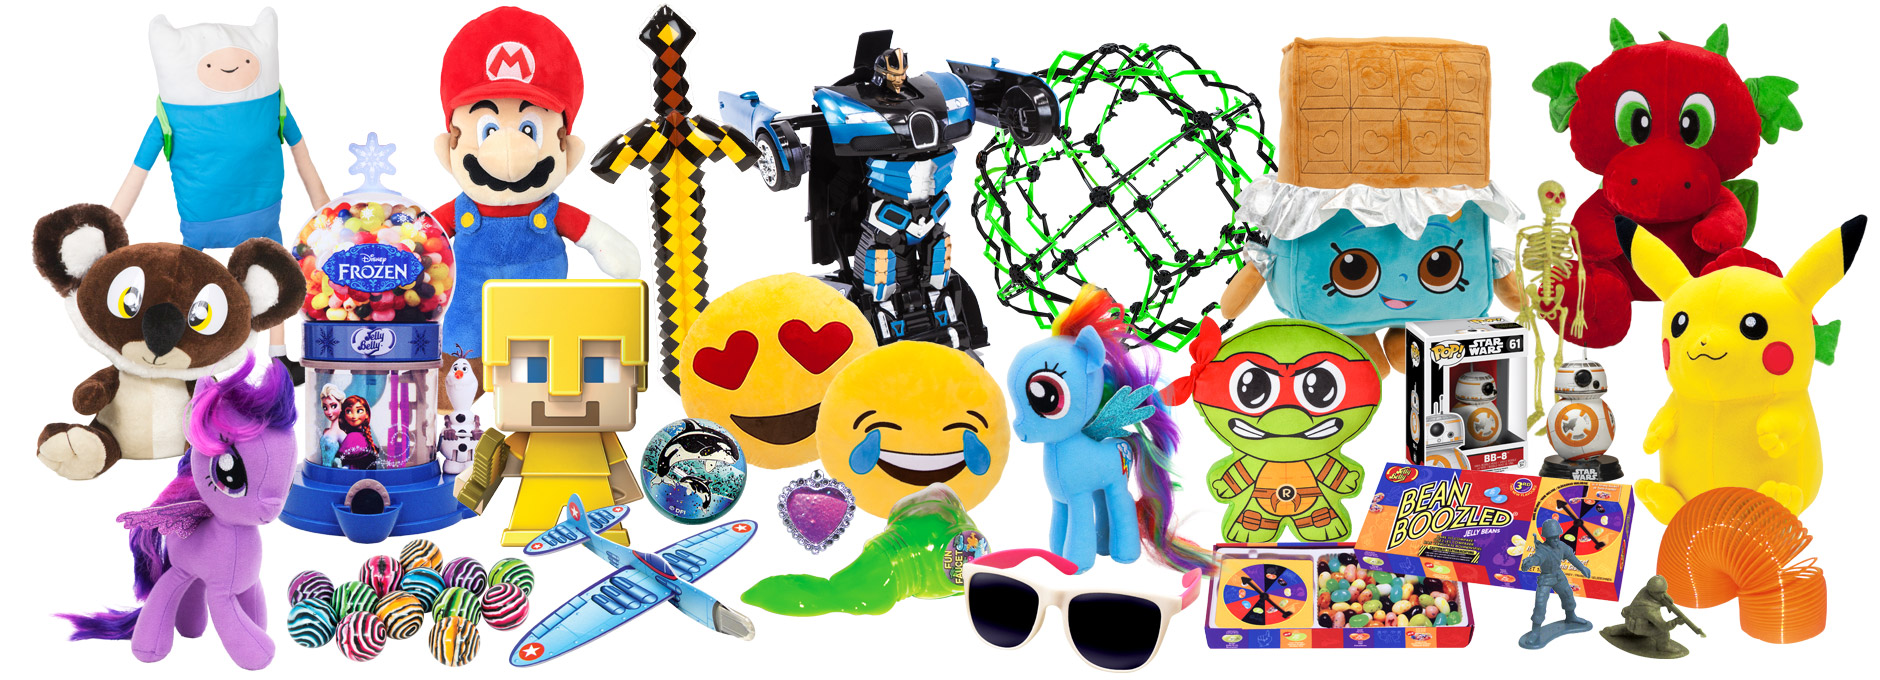 Photo of a variety of plush, novelty, and inflatable items